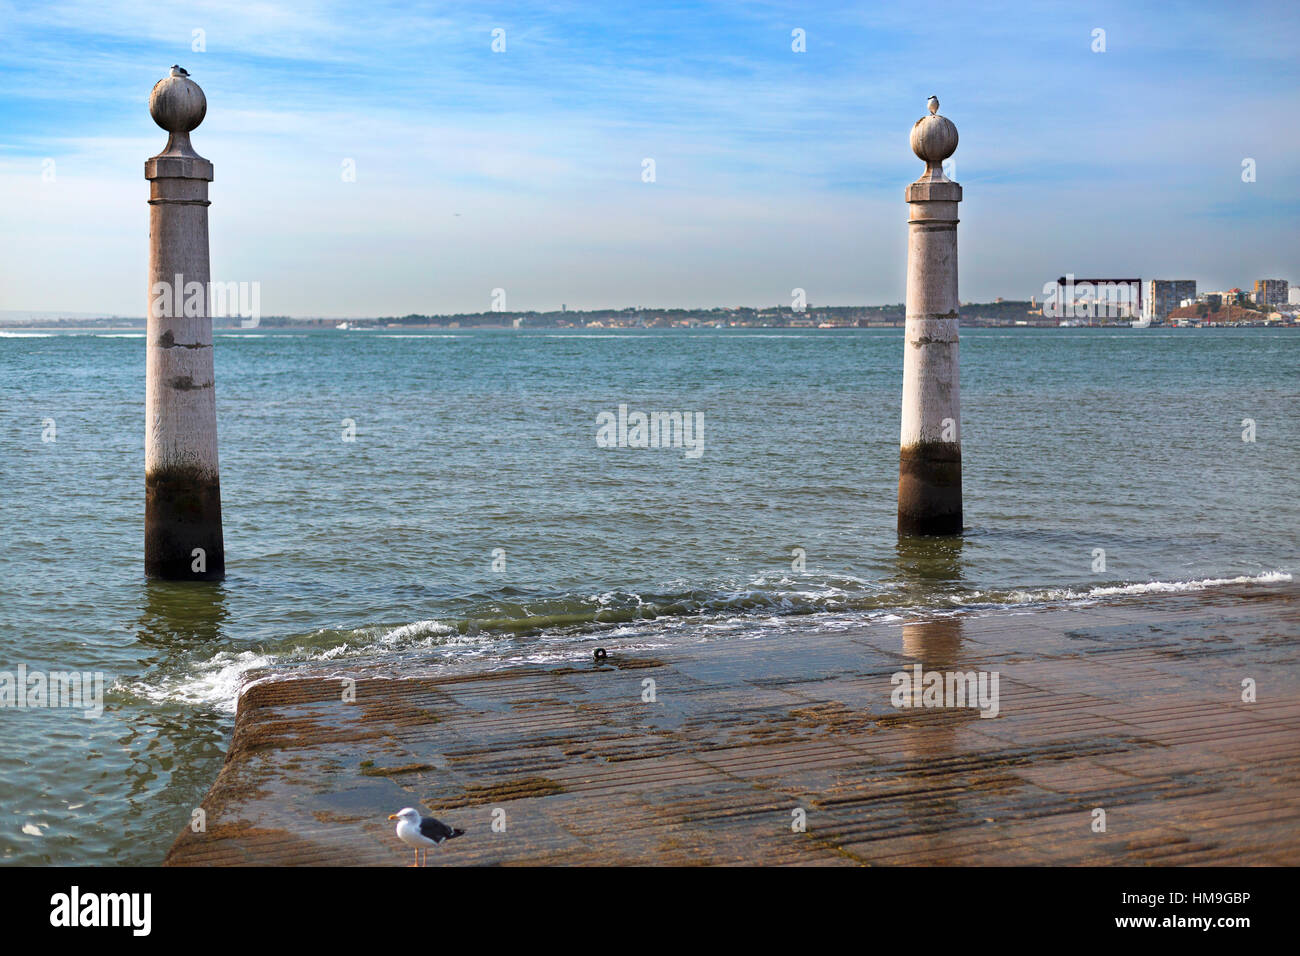 Cais das Colunas is a marble flight of steps, flanked by two water stained marble columns, which runs gently into Stock Photo